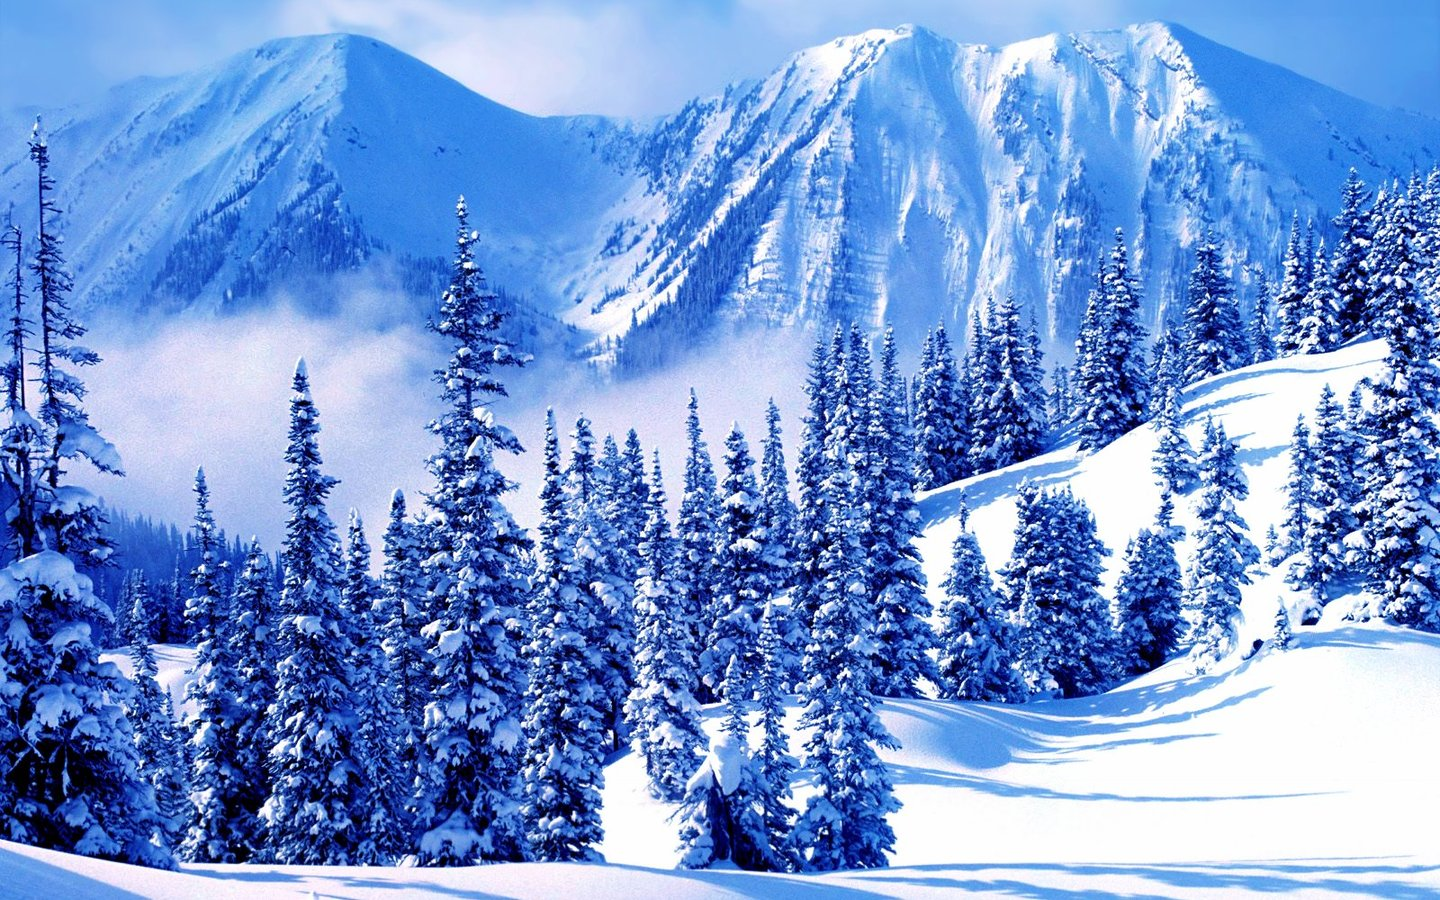 HQ Winter Mountains Wallpaper   HQ Wallpapers 1440x900